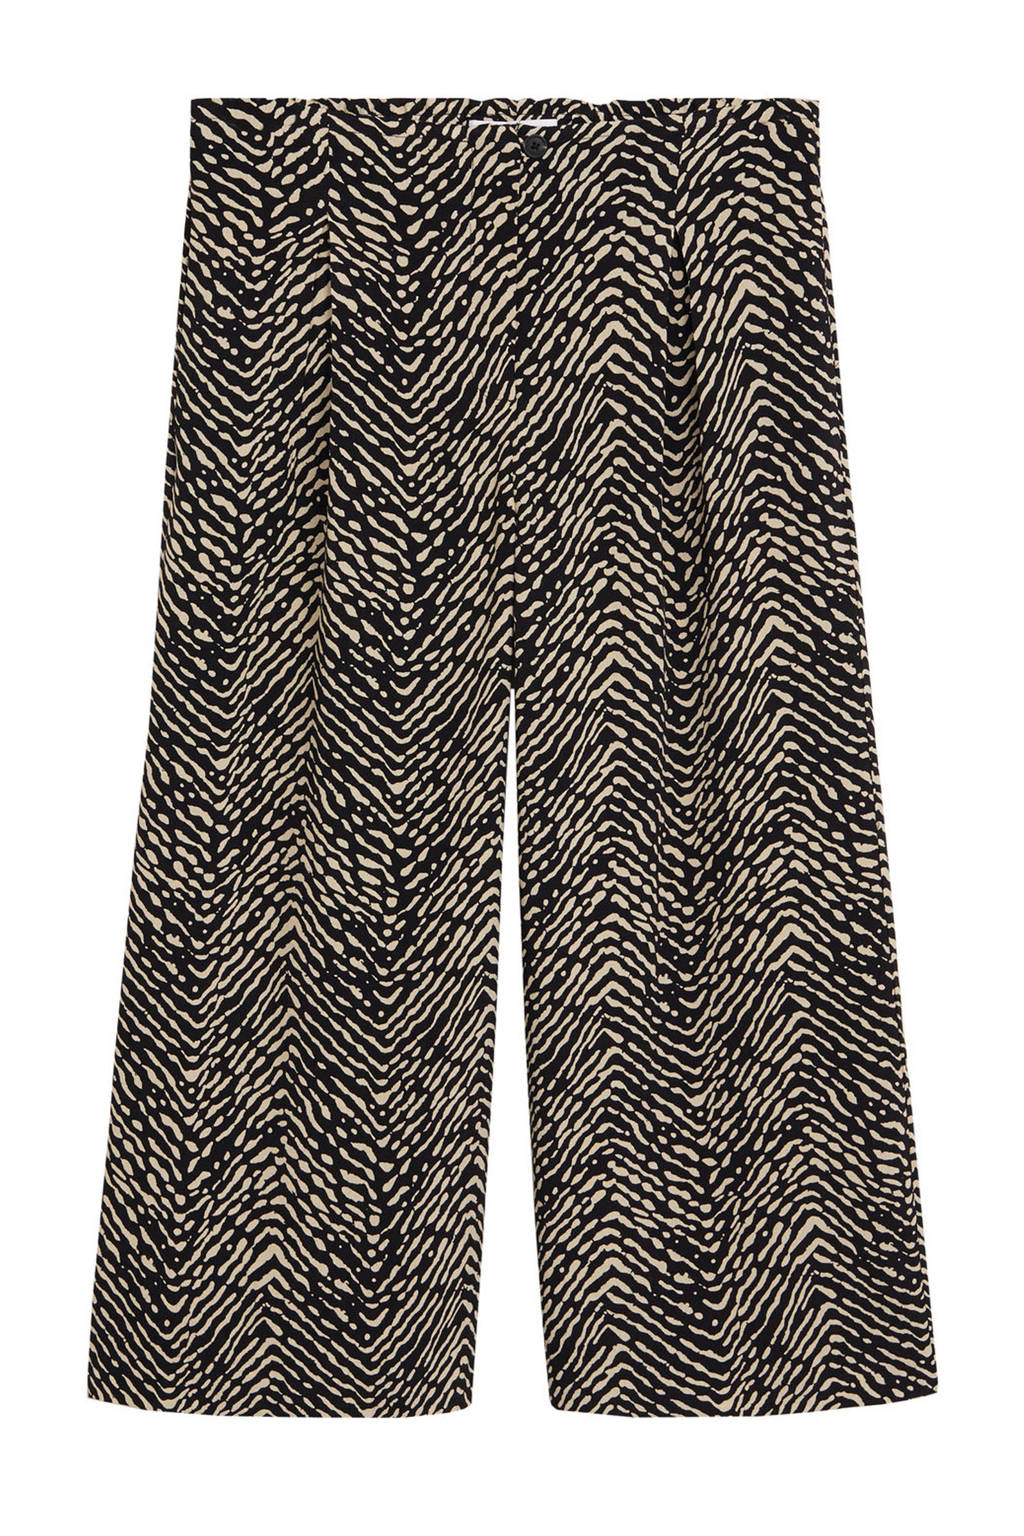 Mango high waist culotte met all over print zwart/beige, Zwart/beige